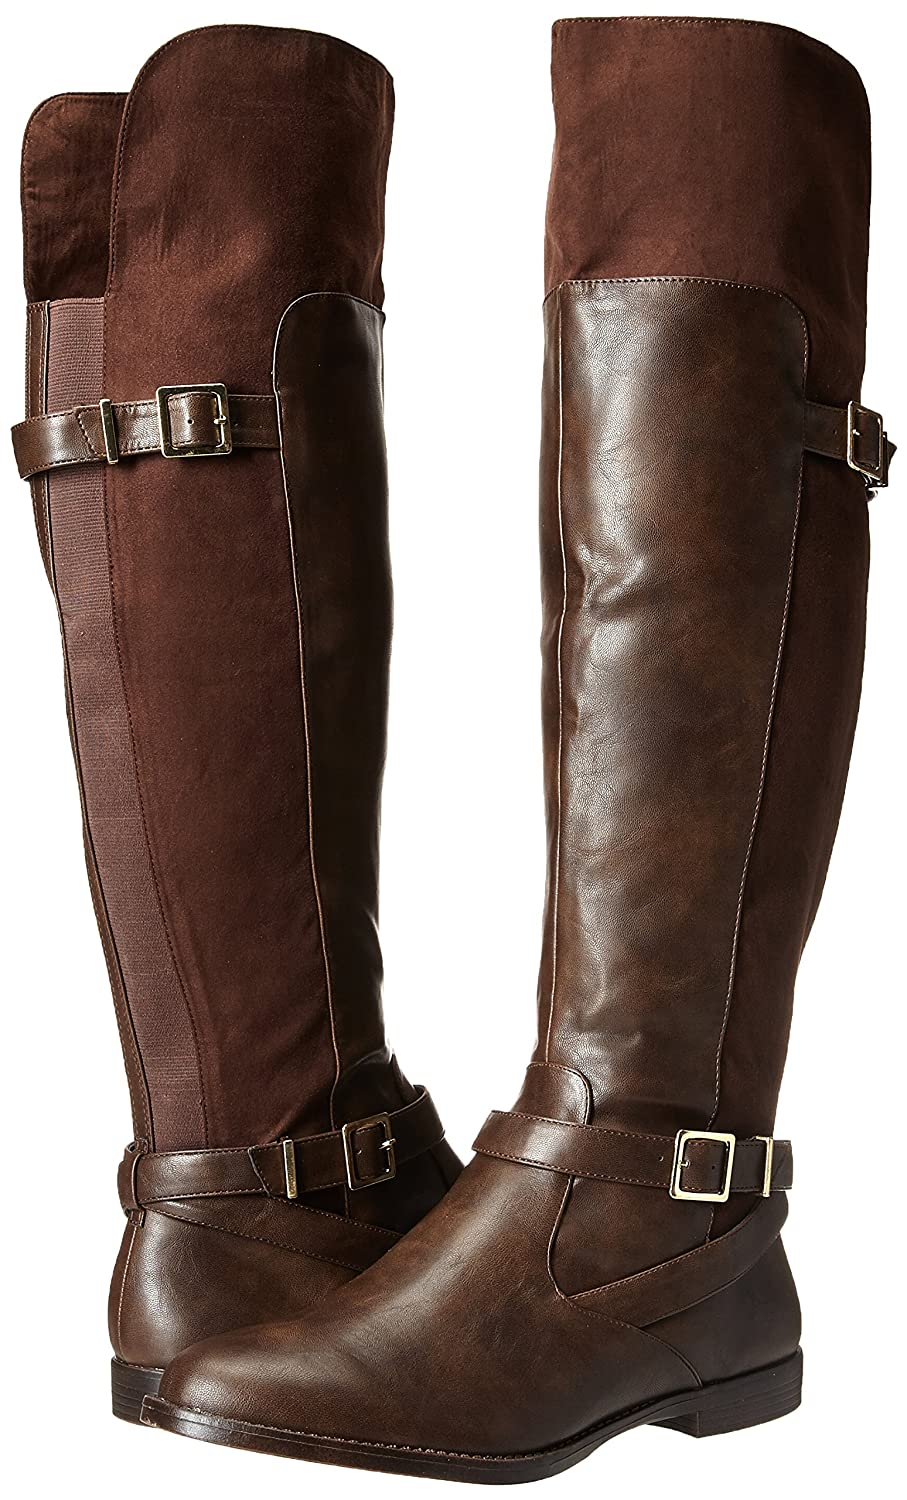 Romy II Suede Fold Over Double-Buckle Straps Low-Heel Women's Brown Pirate Boots - DeluxeAdultCostumes.com